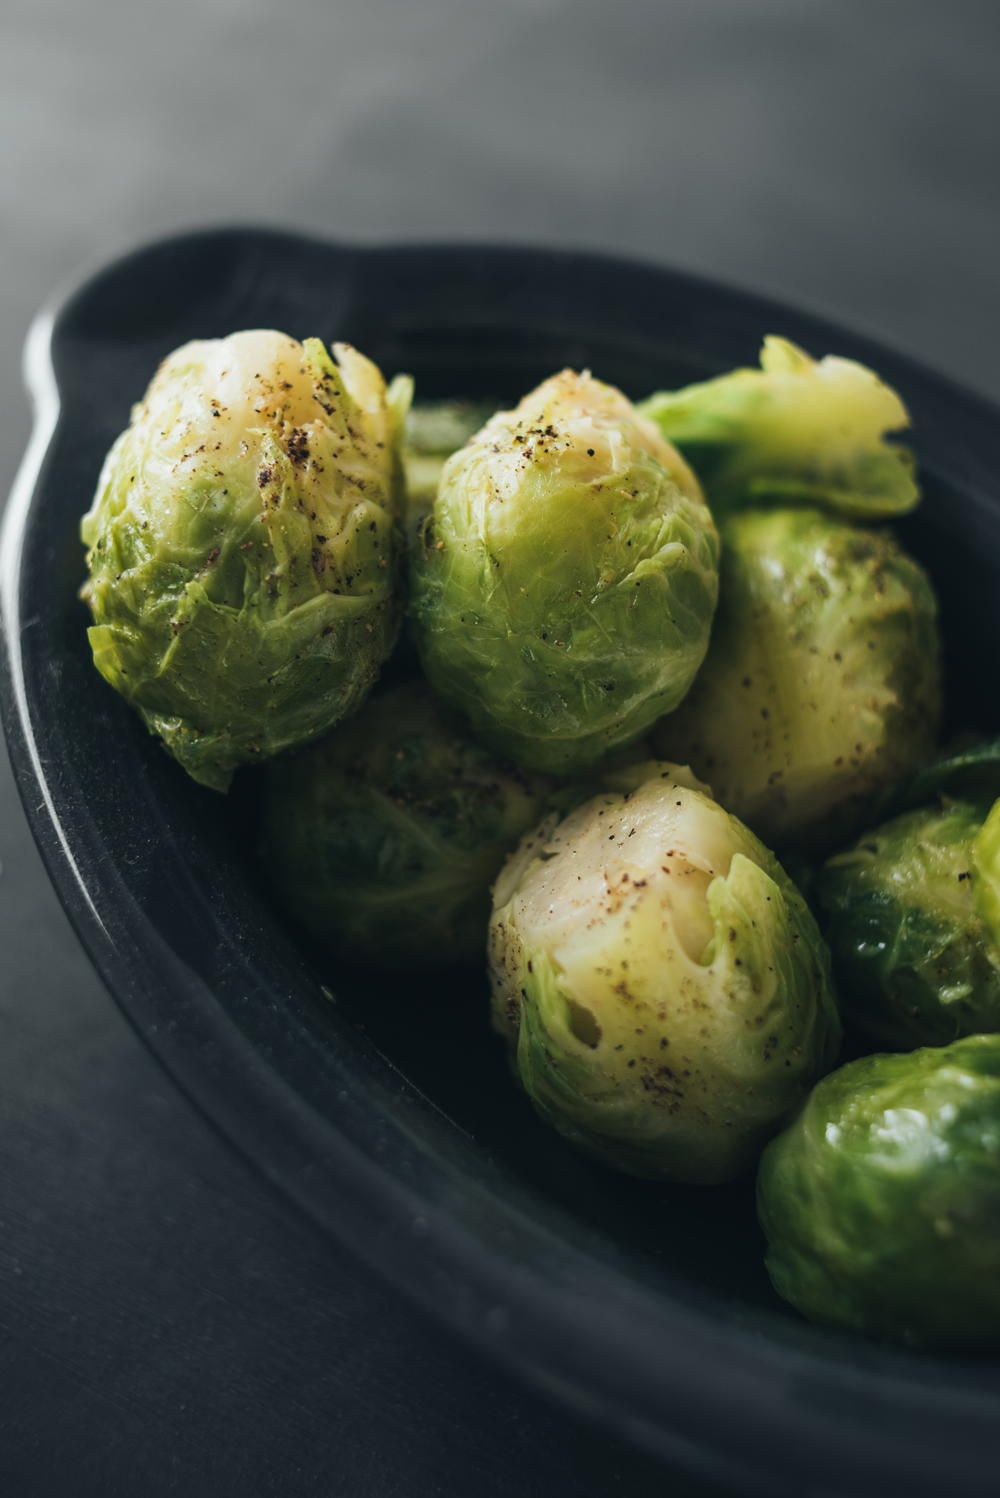 Best Recipes: Boiled Brussels Sprouts